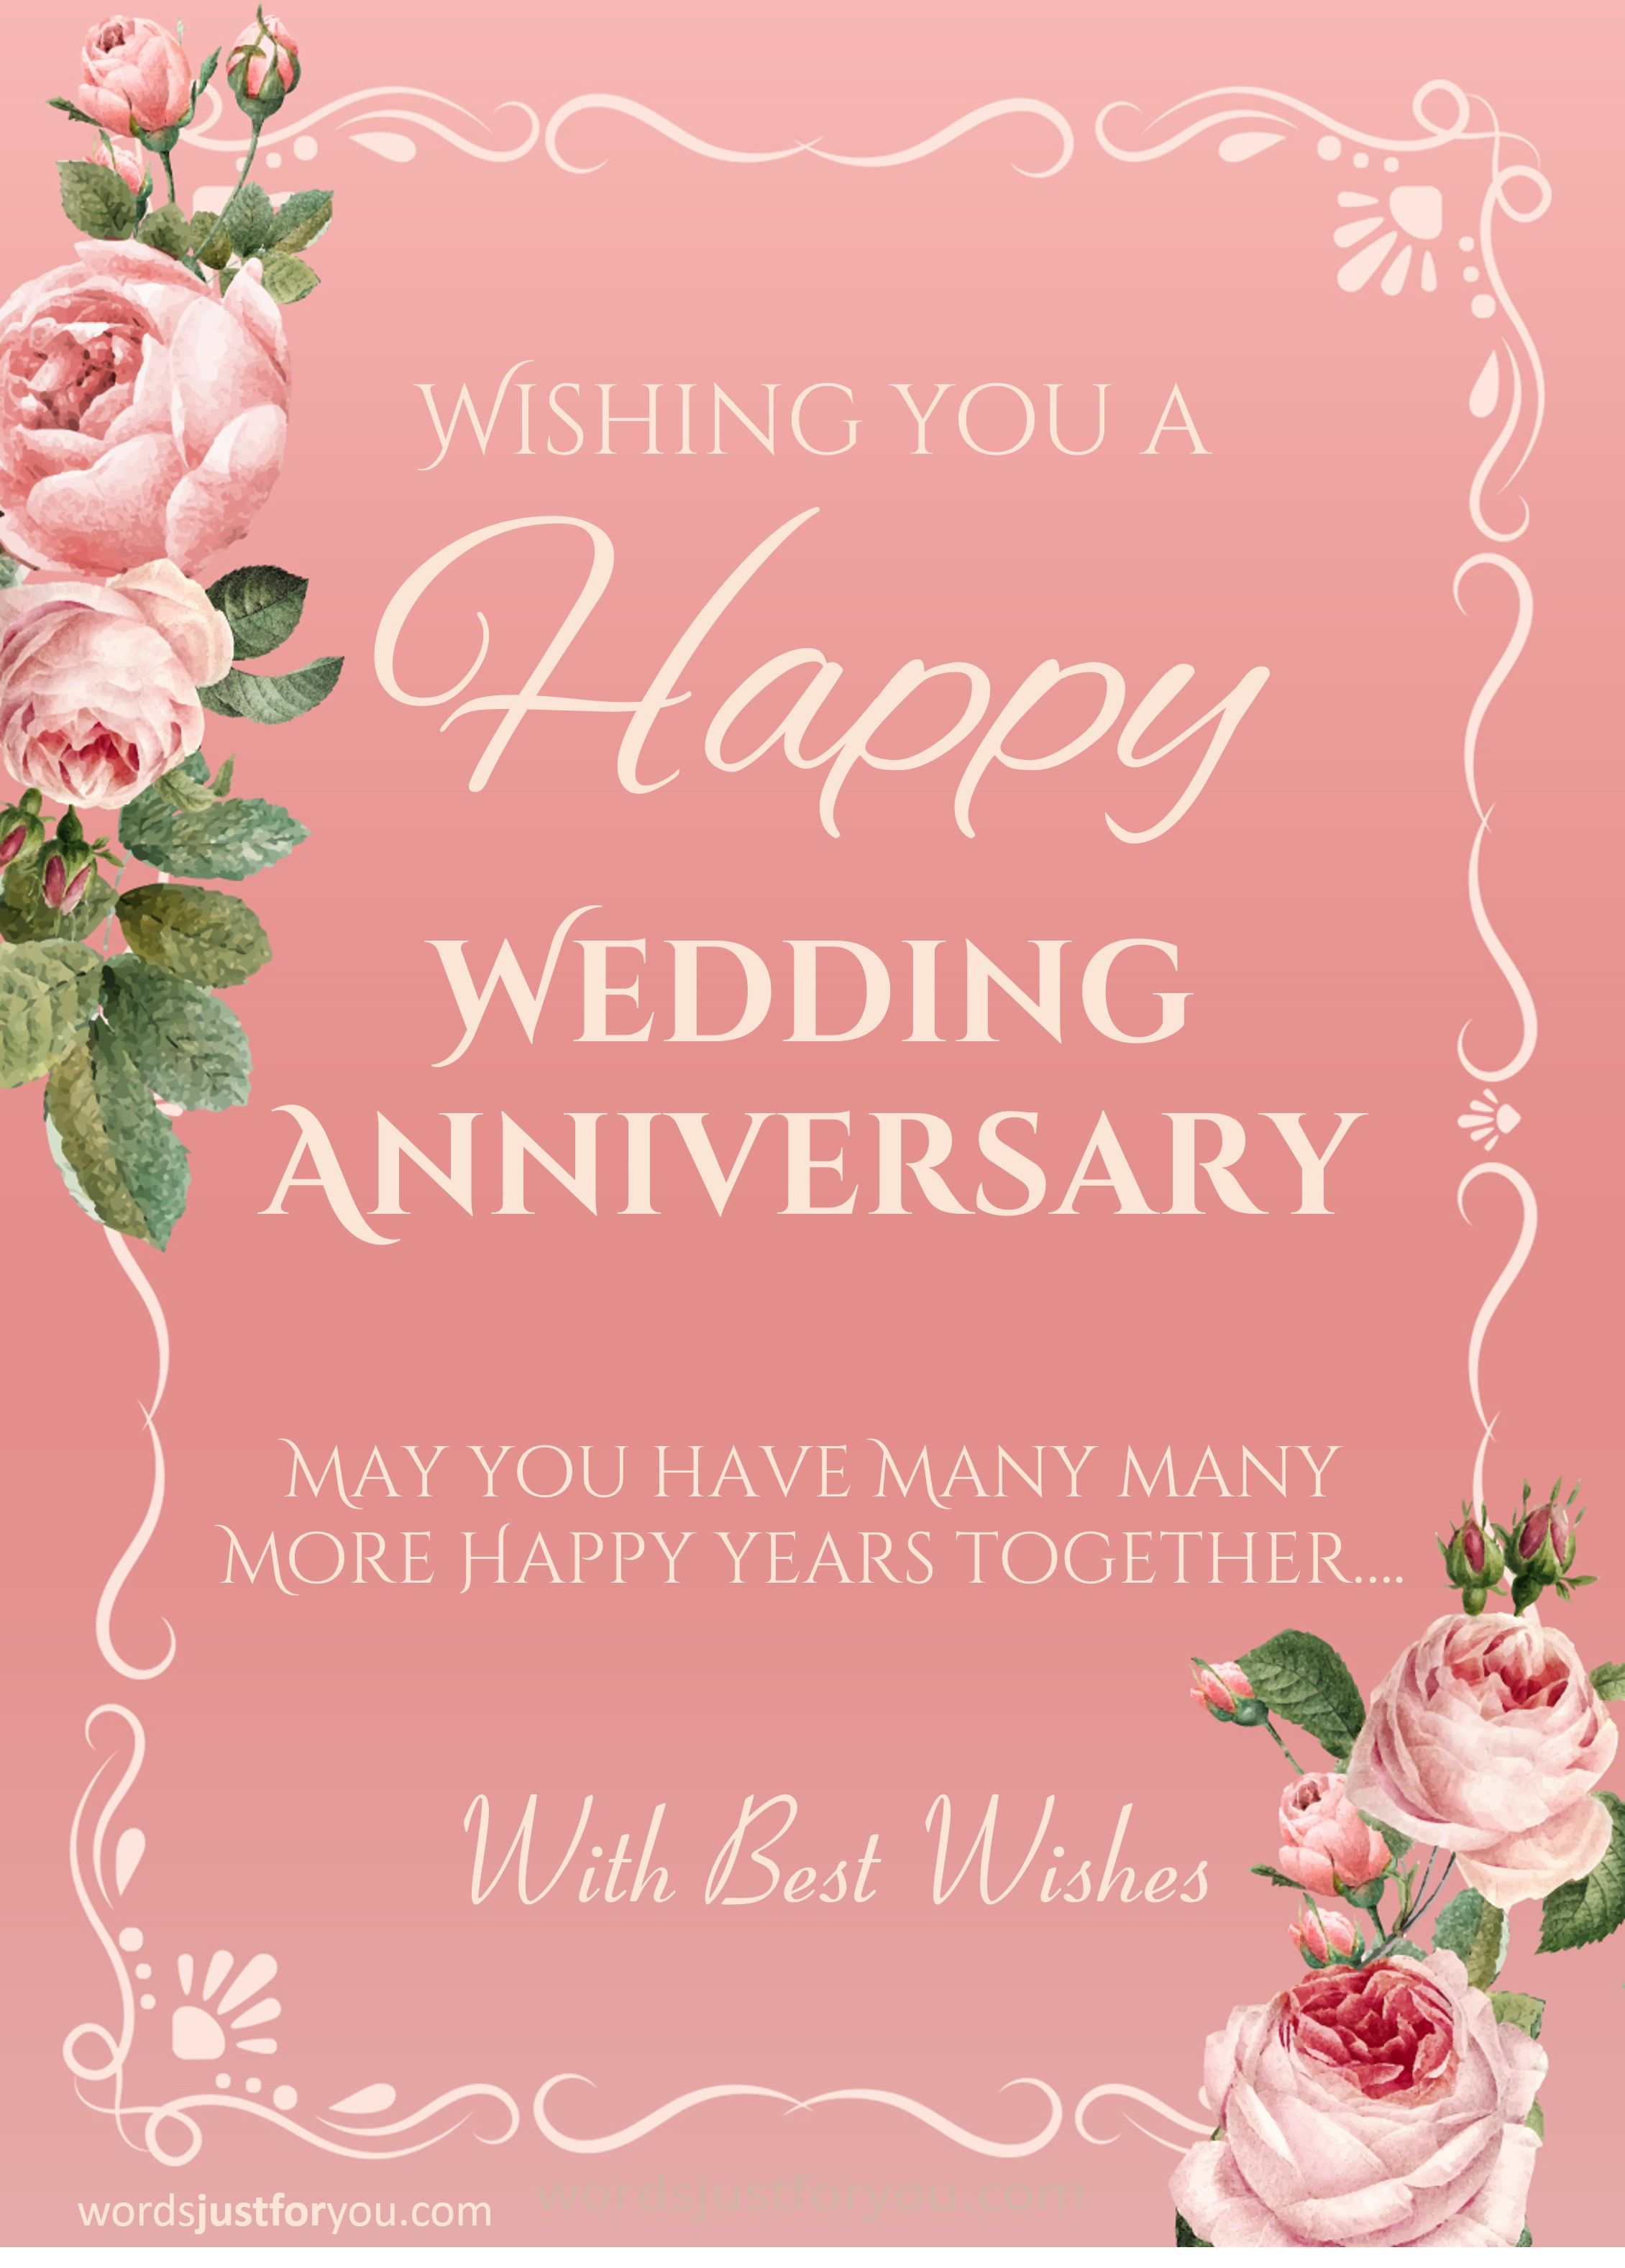 Happy Wedding Anniversary Card Words Just For You Free Design